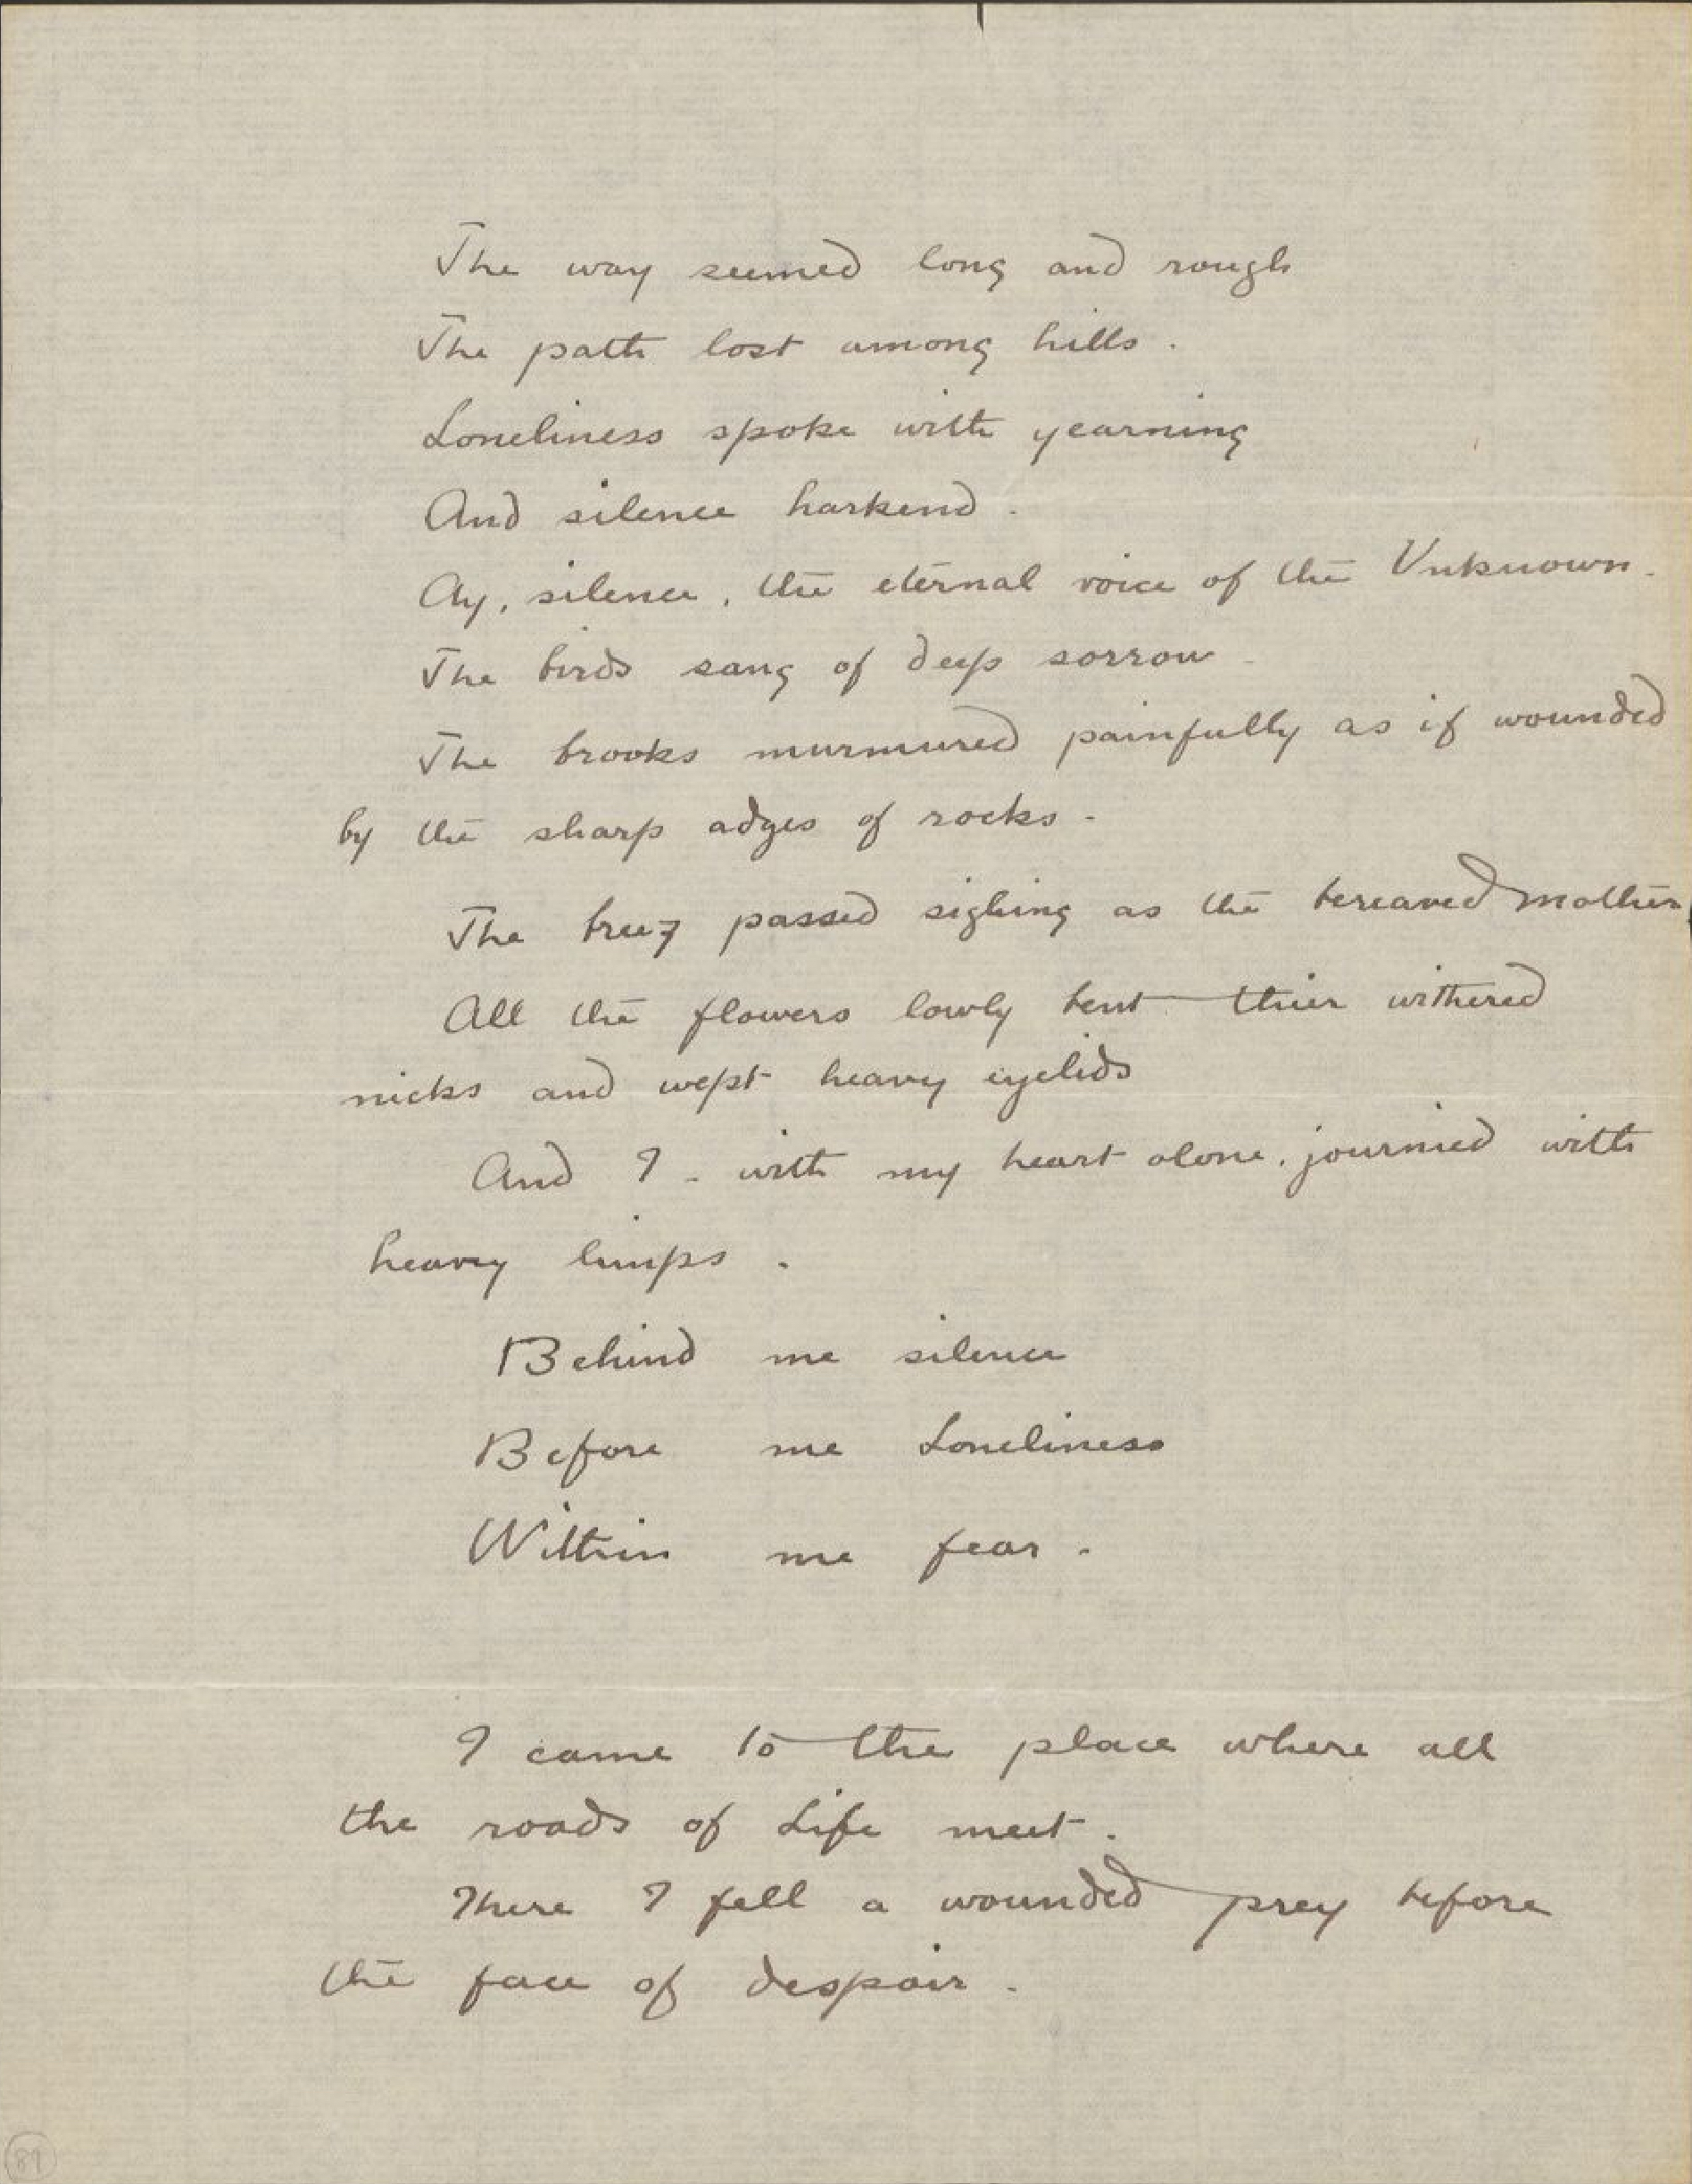 The Way Seemed Long and Rough (Unpublished Manuscript), Josephine Preston Peabody papers